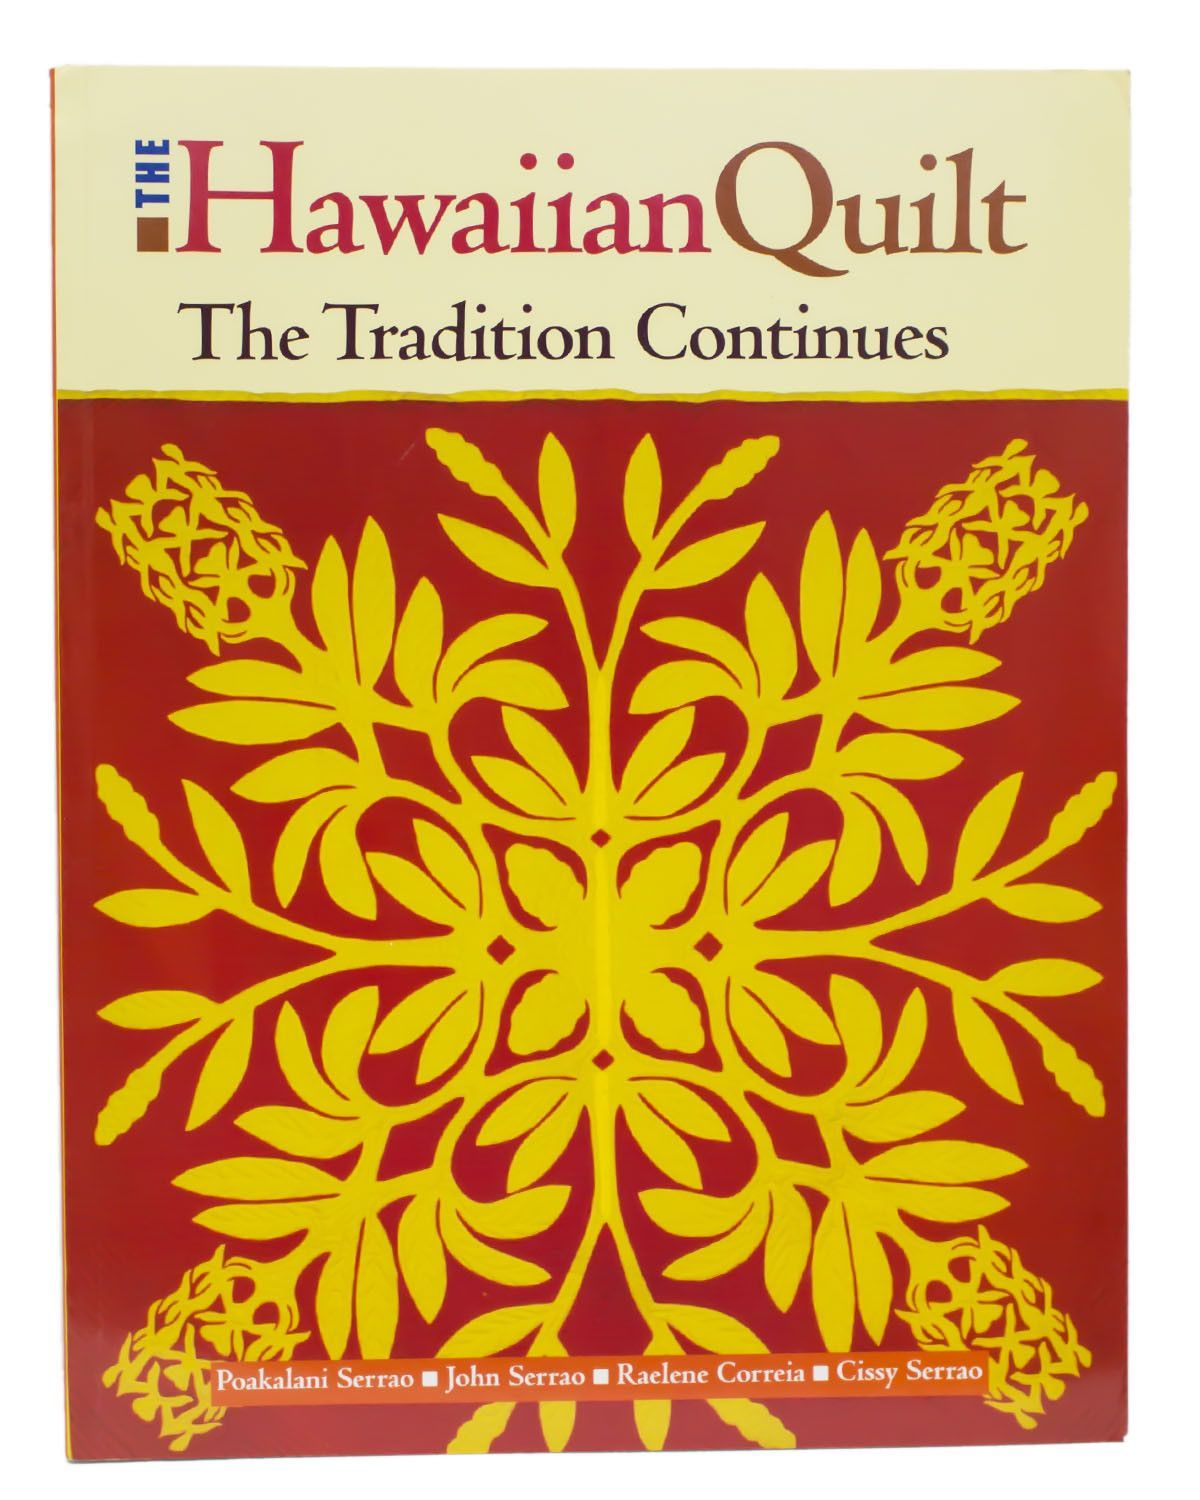 THE HAWAIIAN QUILT - THE TRADITION CONTINUES